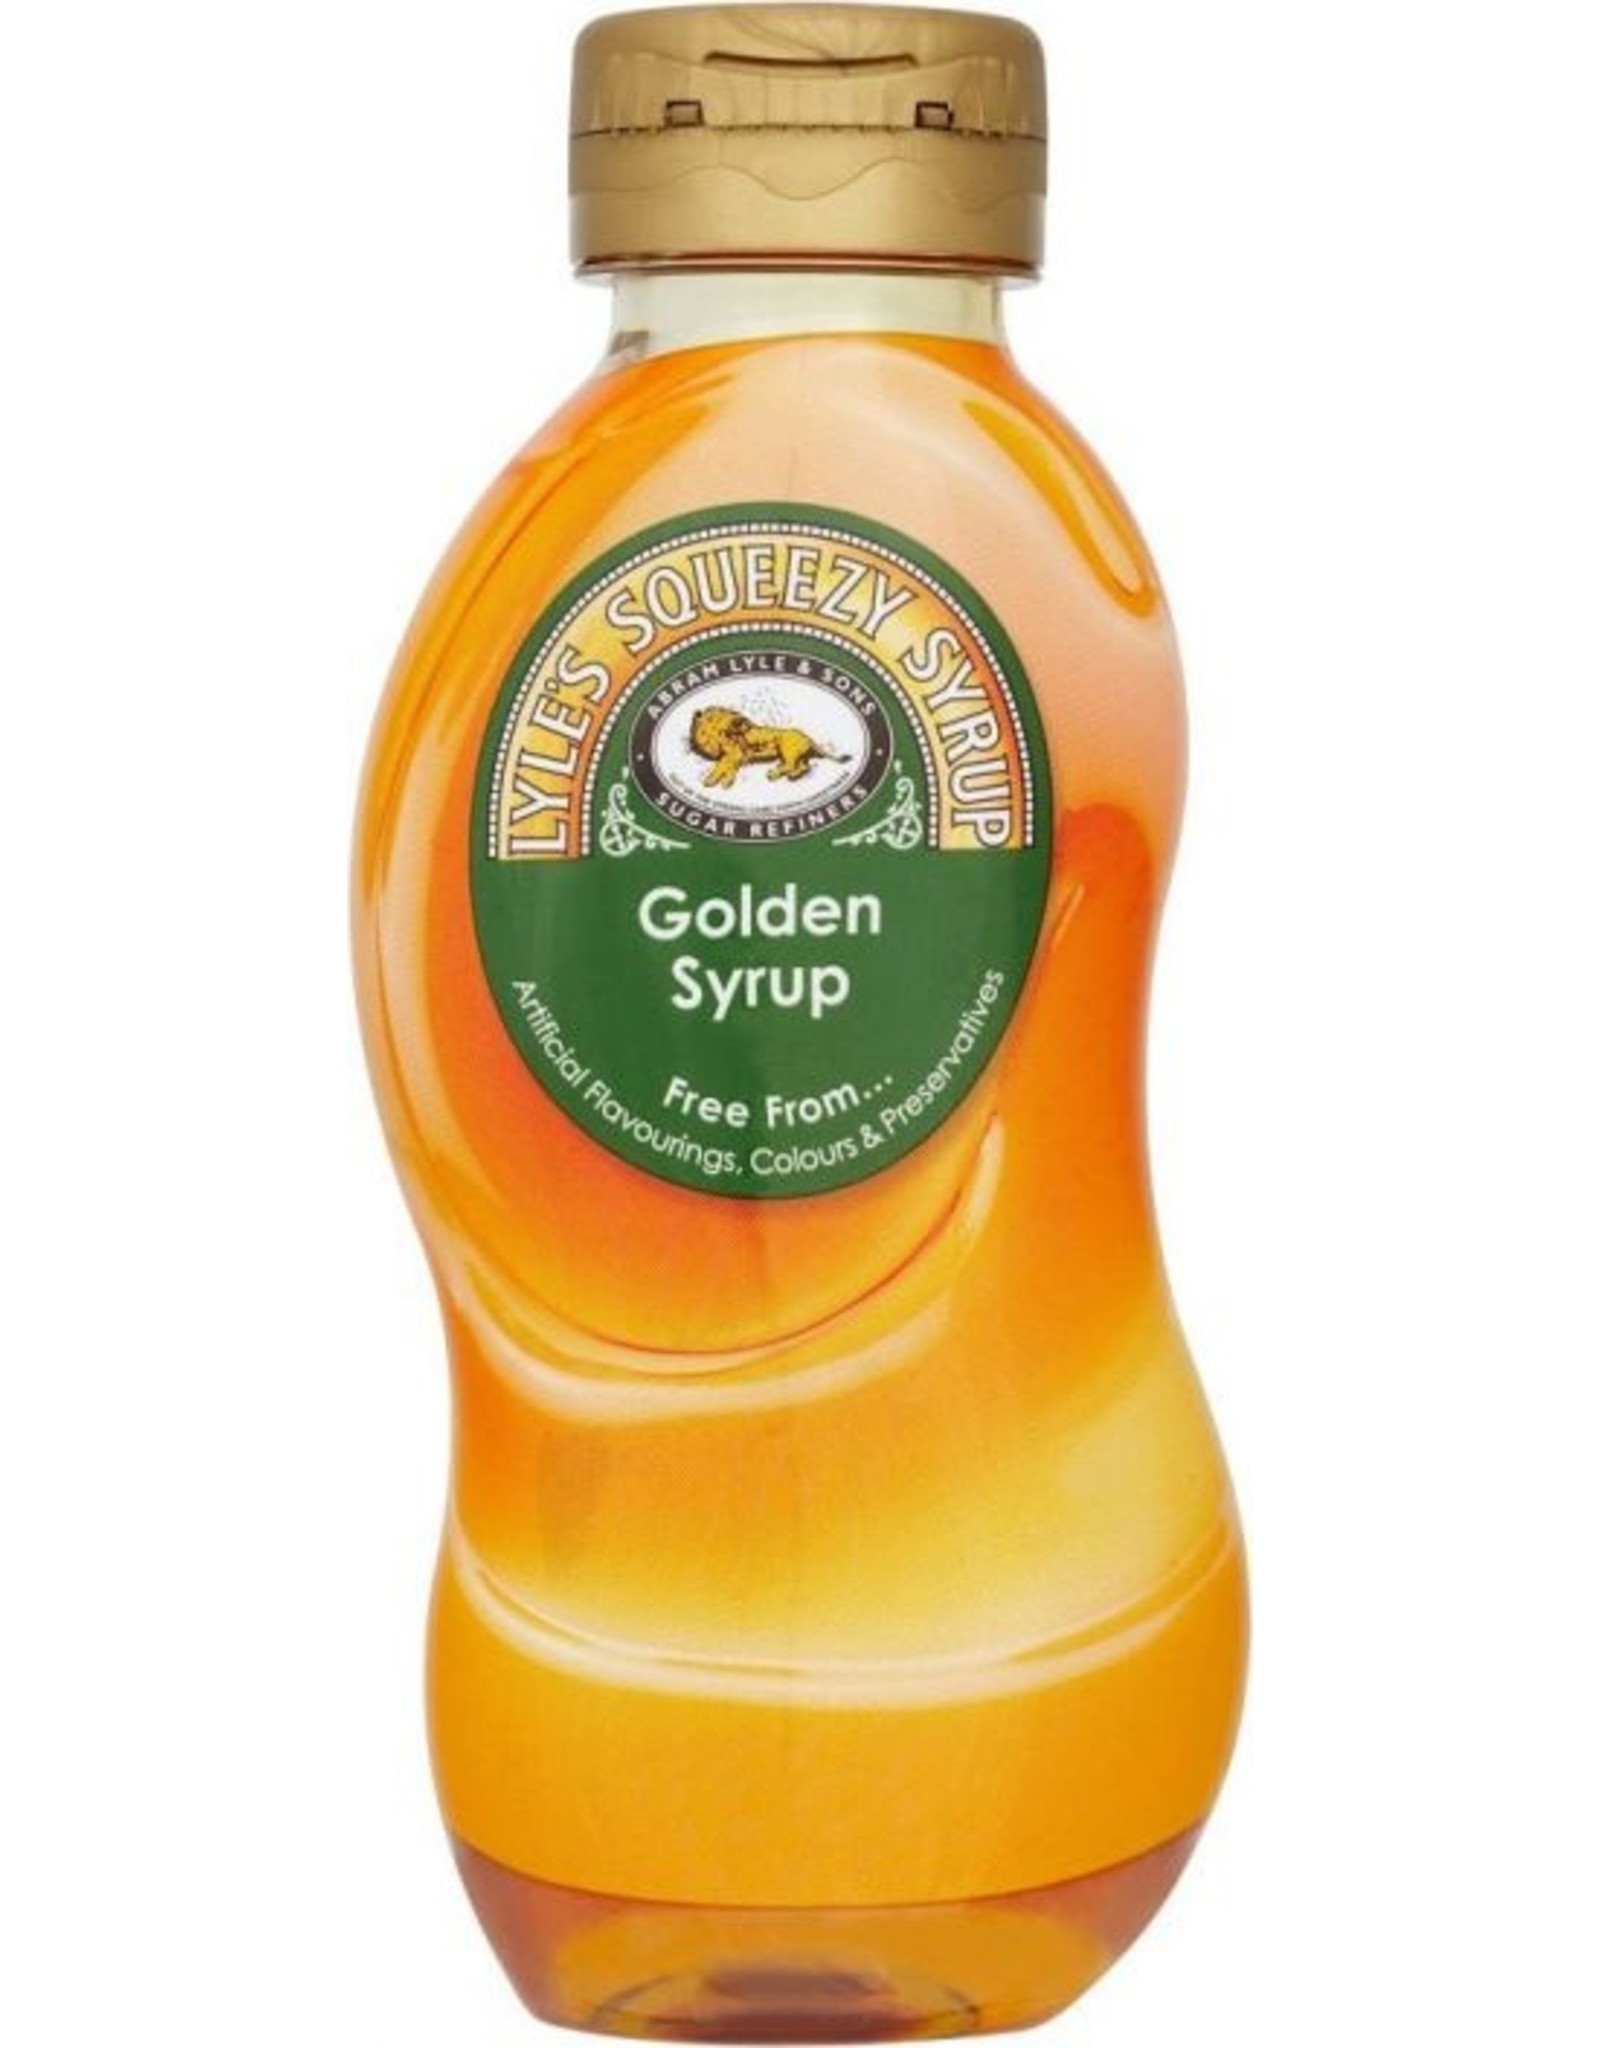 Lyle's Squeezy Golden Syrup 325g (11.5 0z)